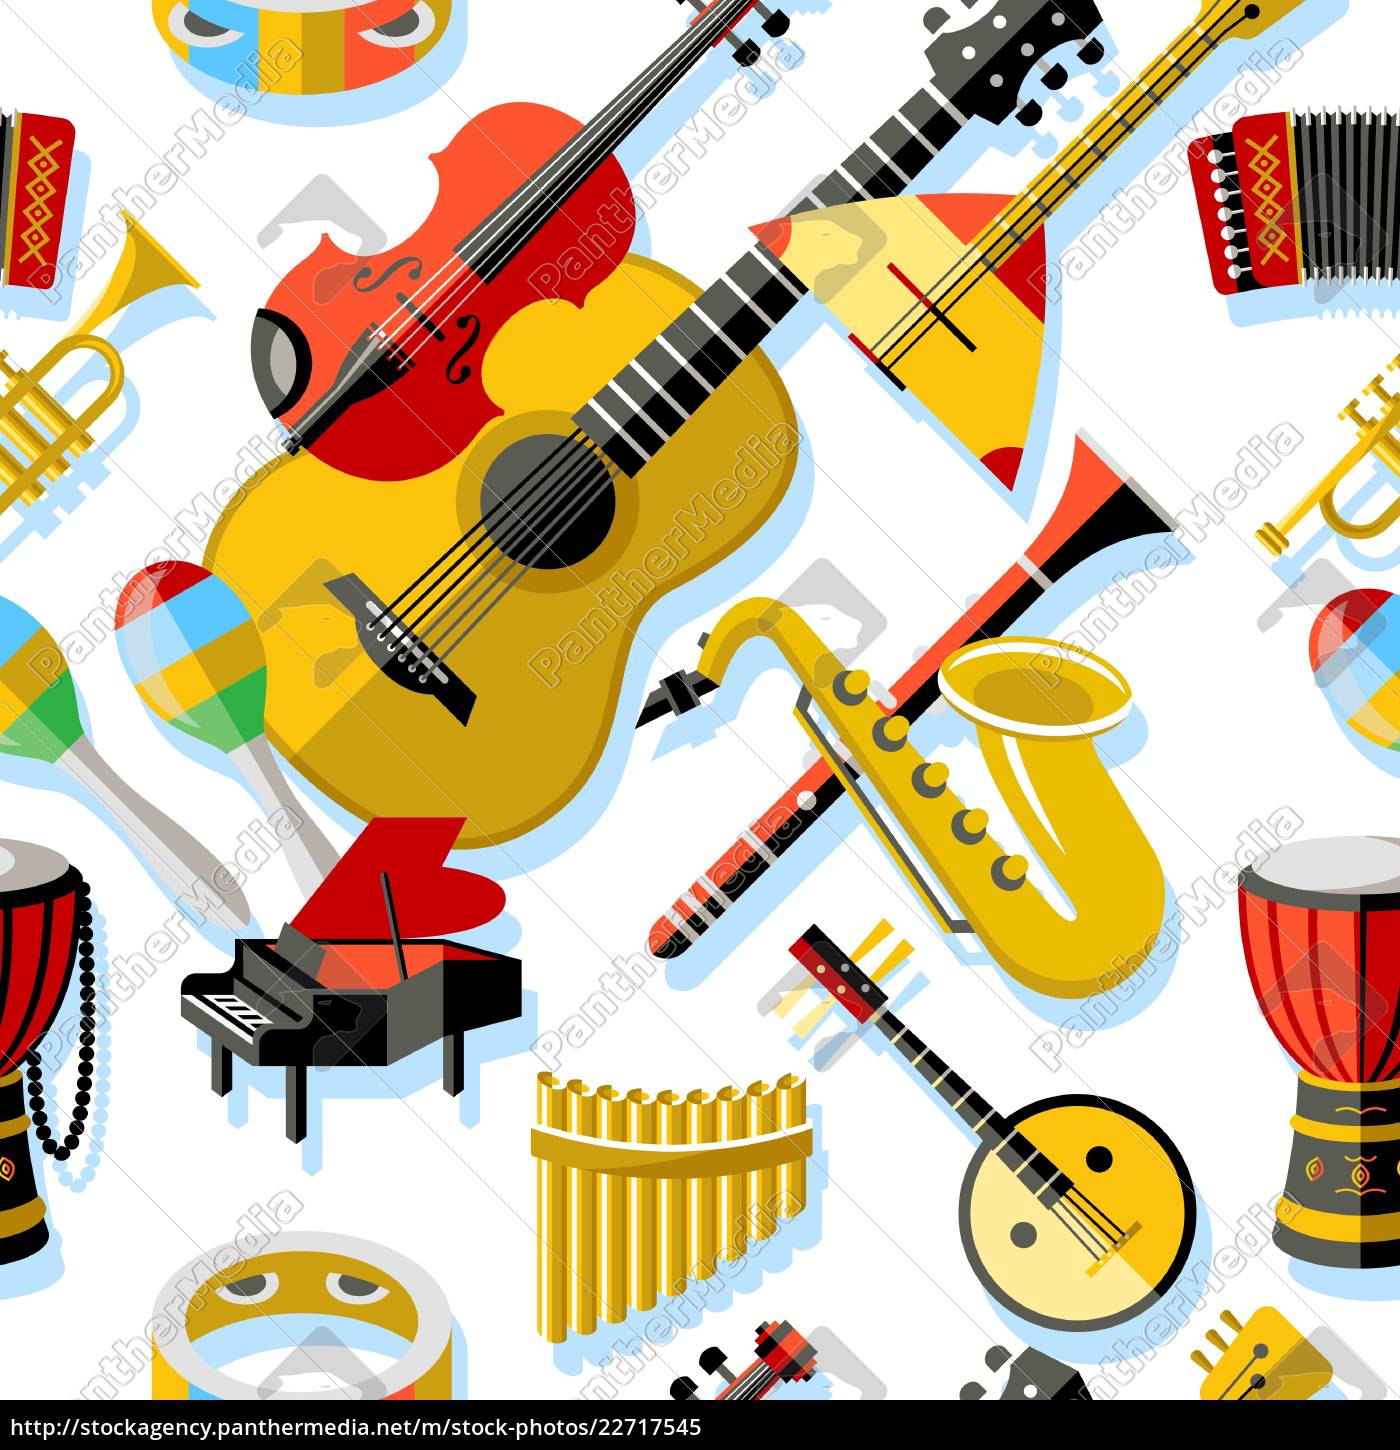 digital, vector, yellow, red, music, instruments - 22717545